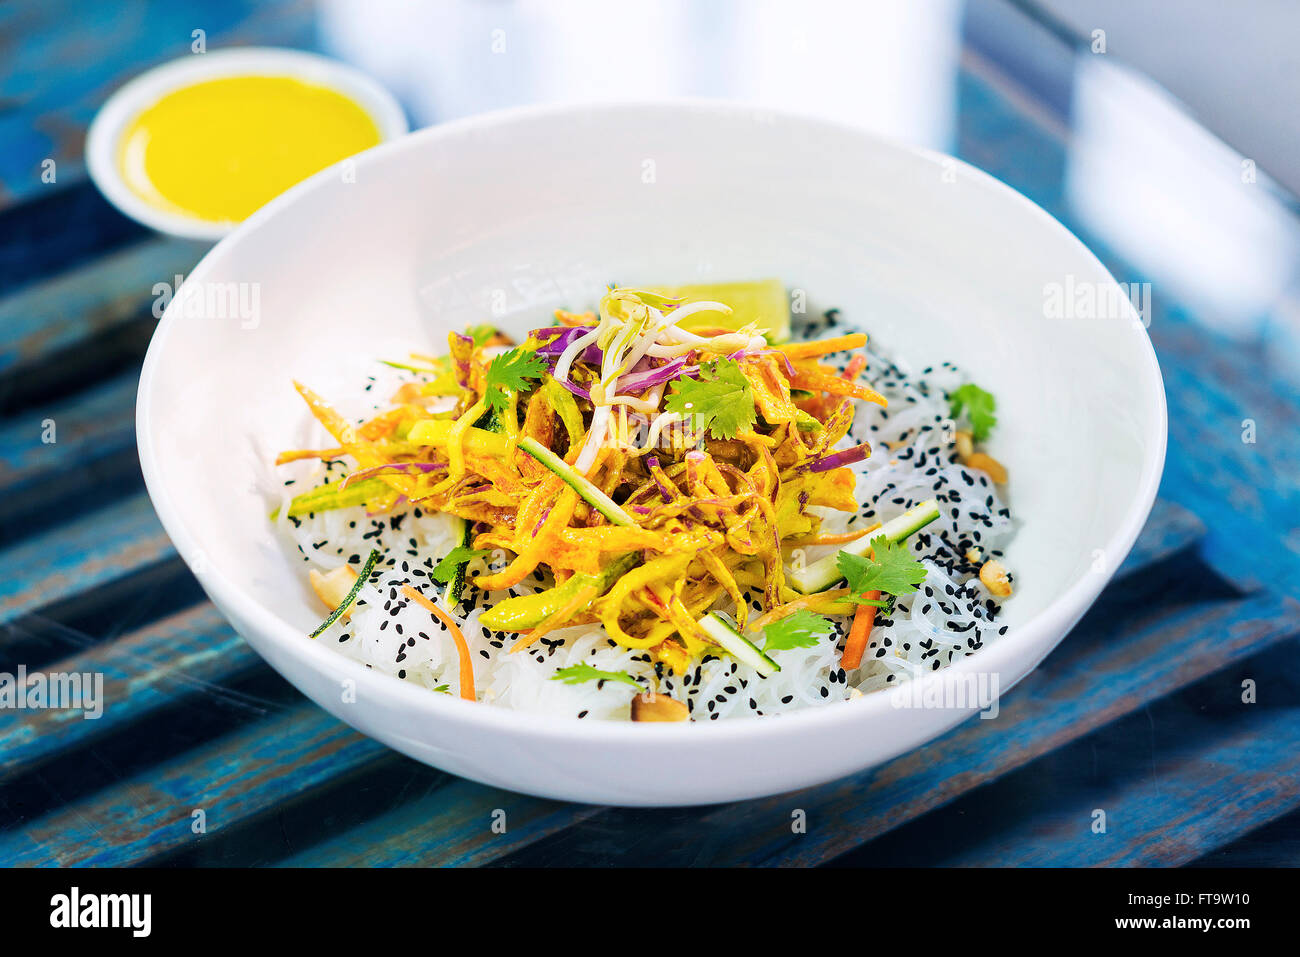 curry sauce vegetable salad with noodles and sesame modern asian fusion dish - Stock Image